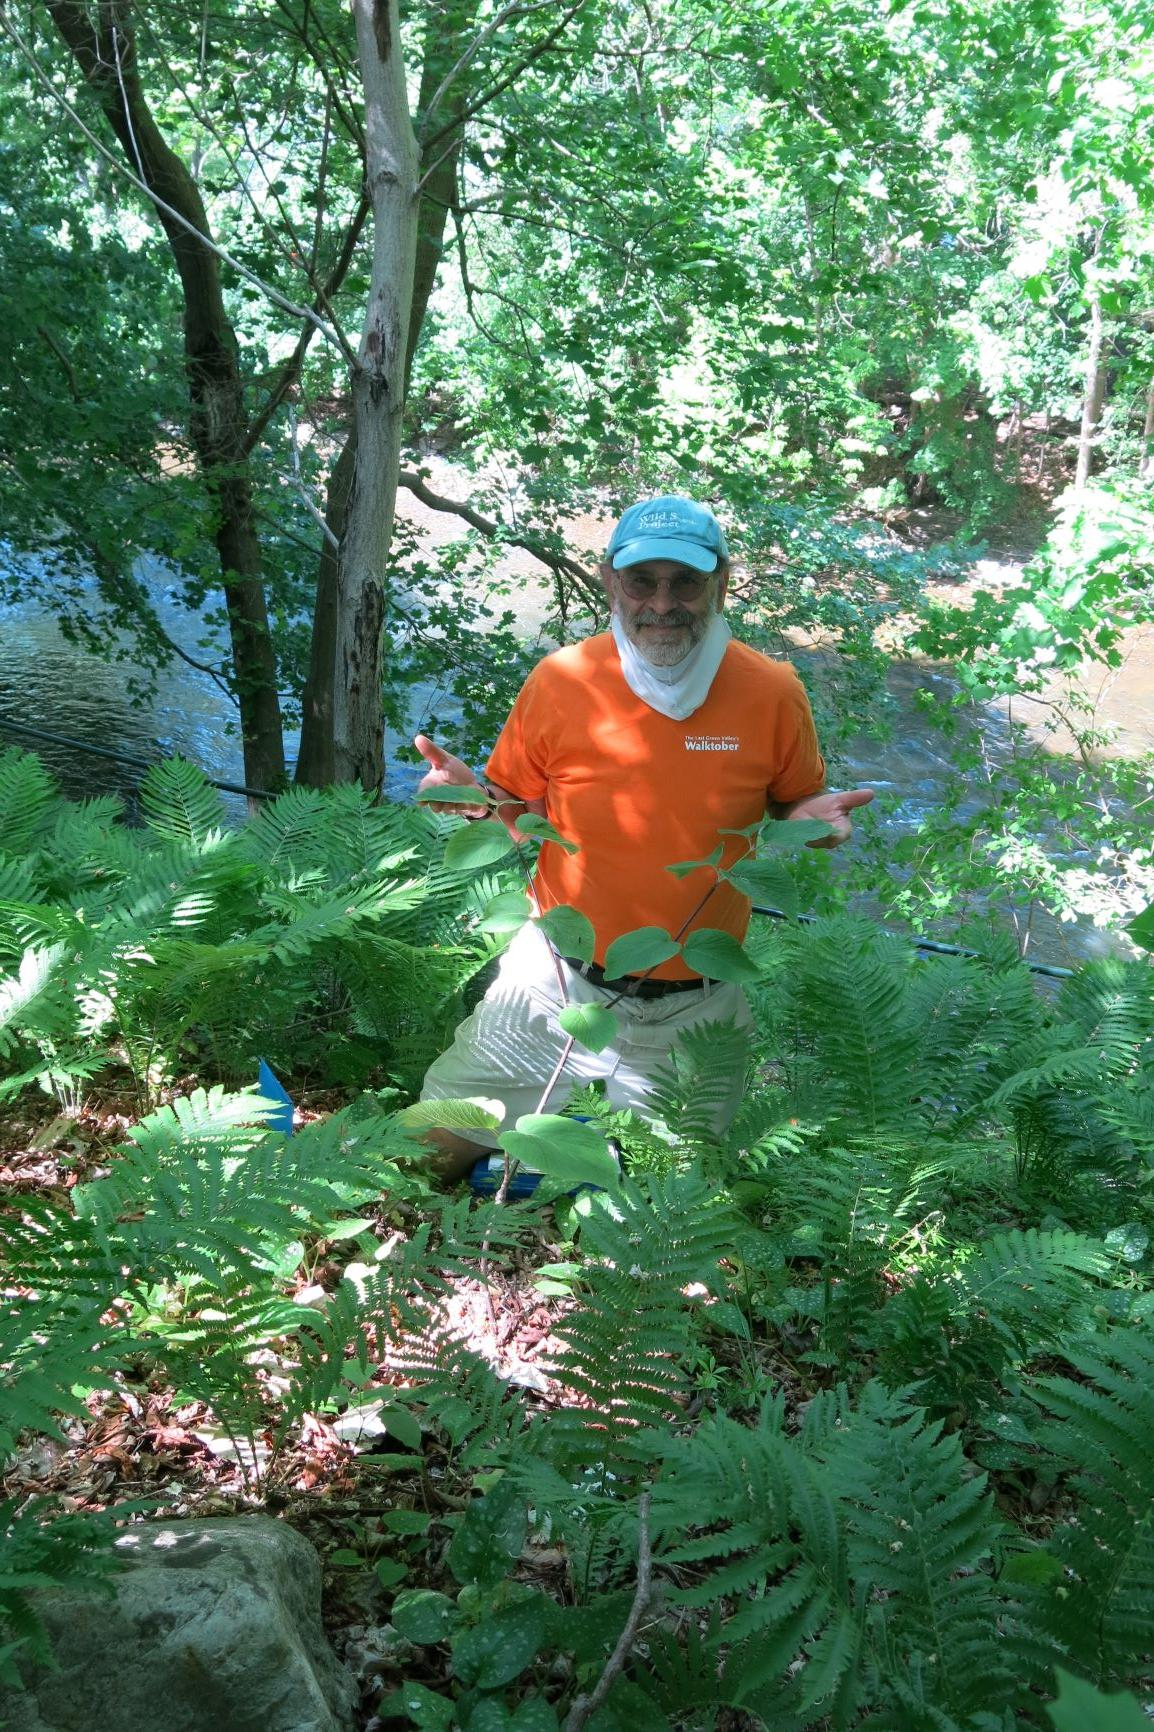 Russ Cohen leads virtual edible wild plant tours along River Walk in Great Barrington